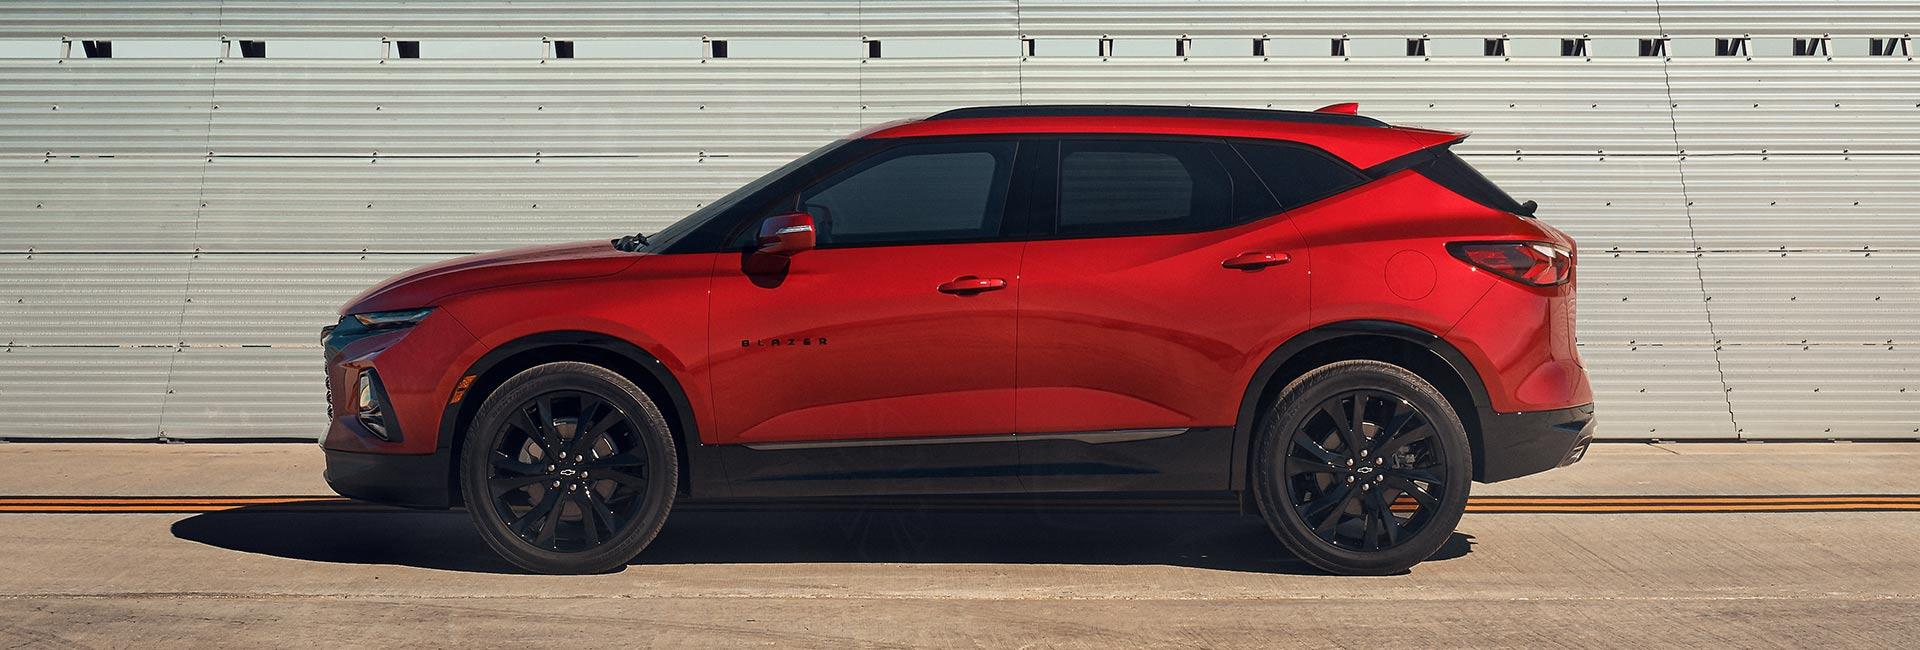 Picture of the exterior of the 2020 Chevy Blazer for sale.